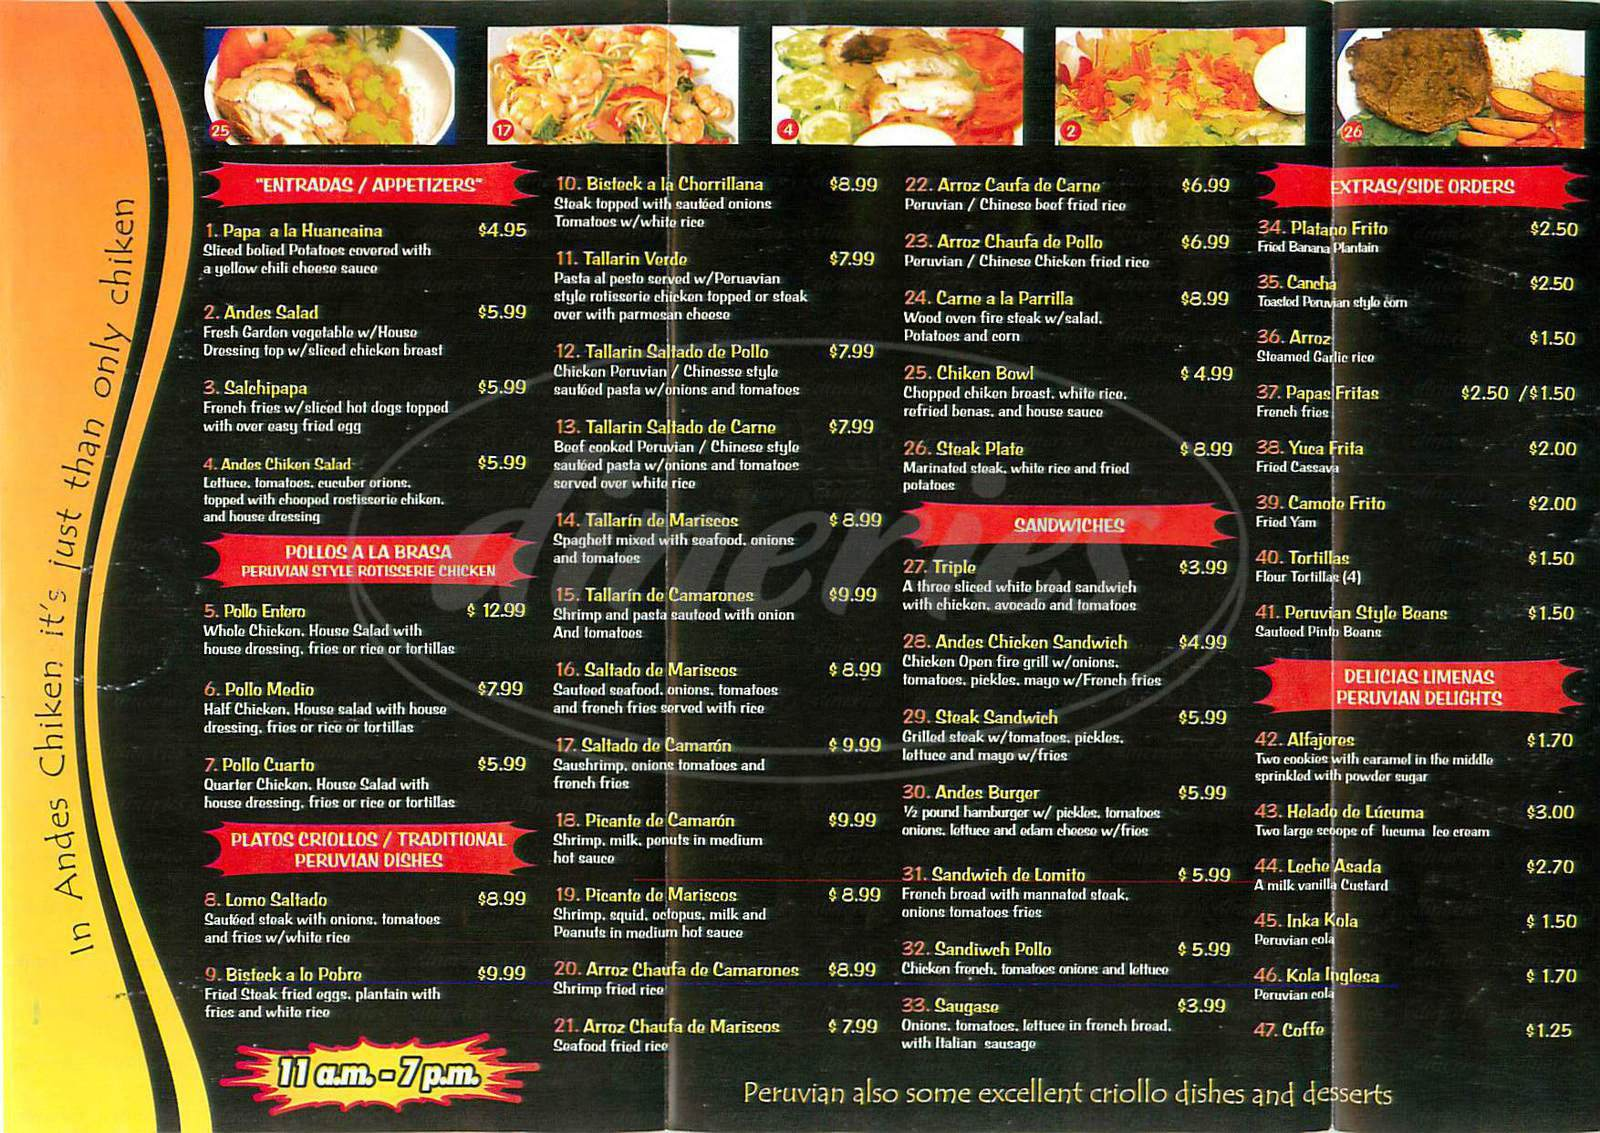 menu for Andes Chicken